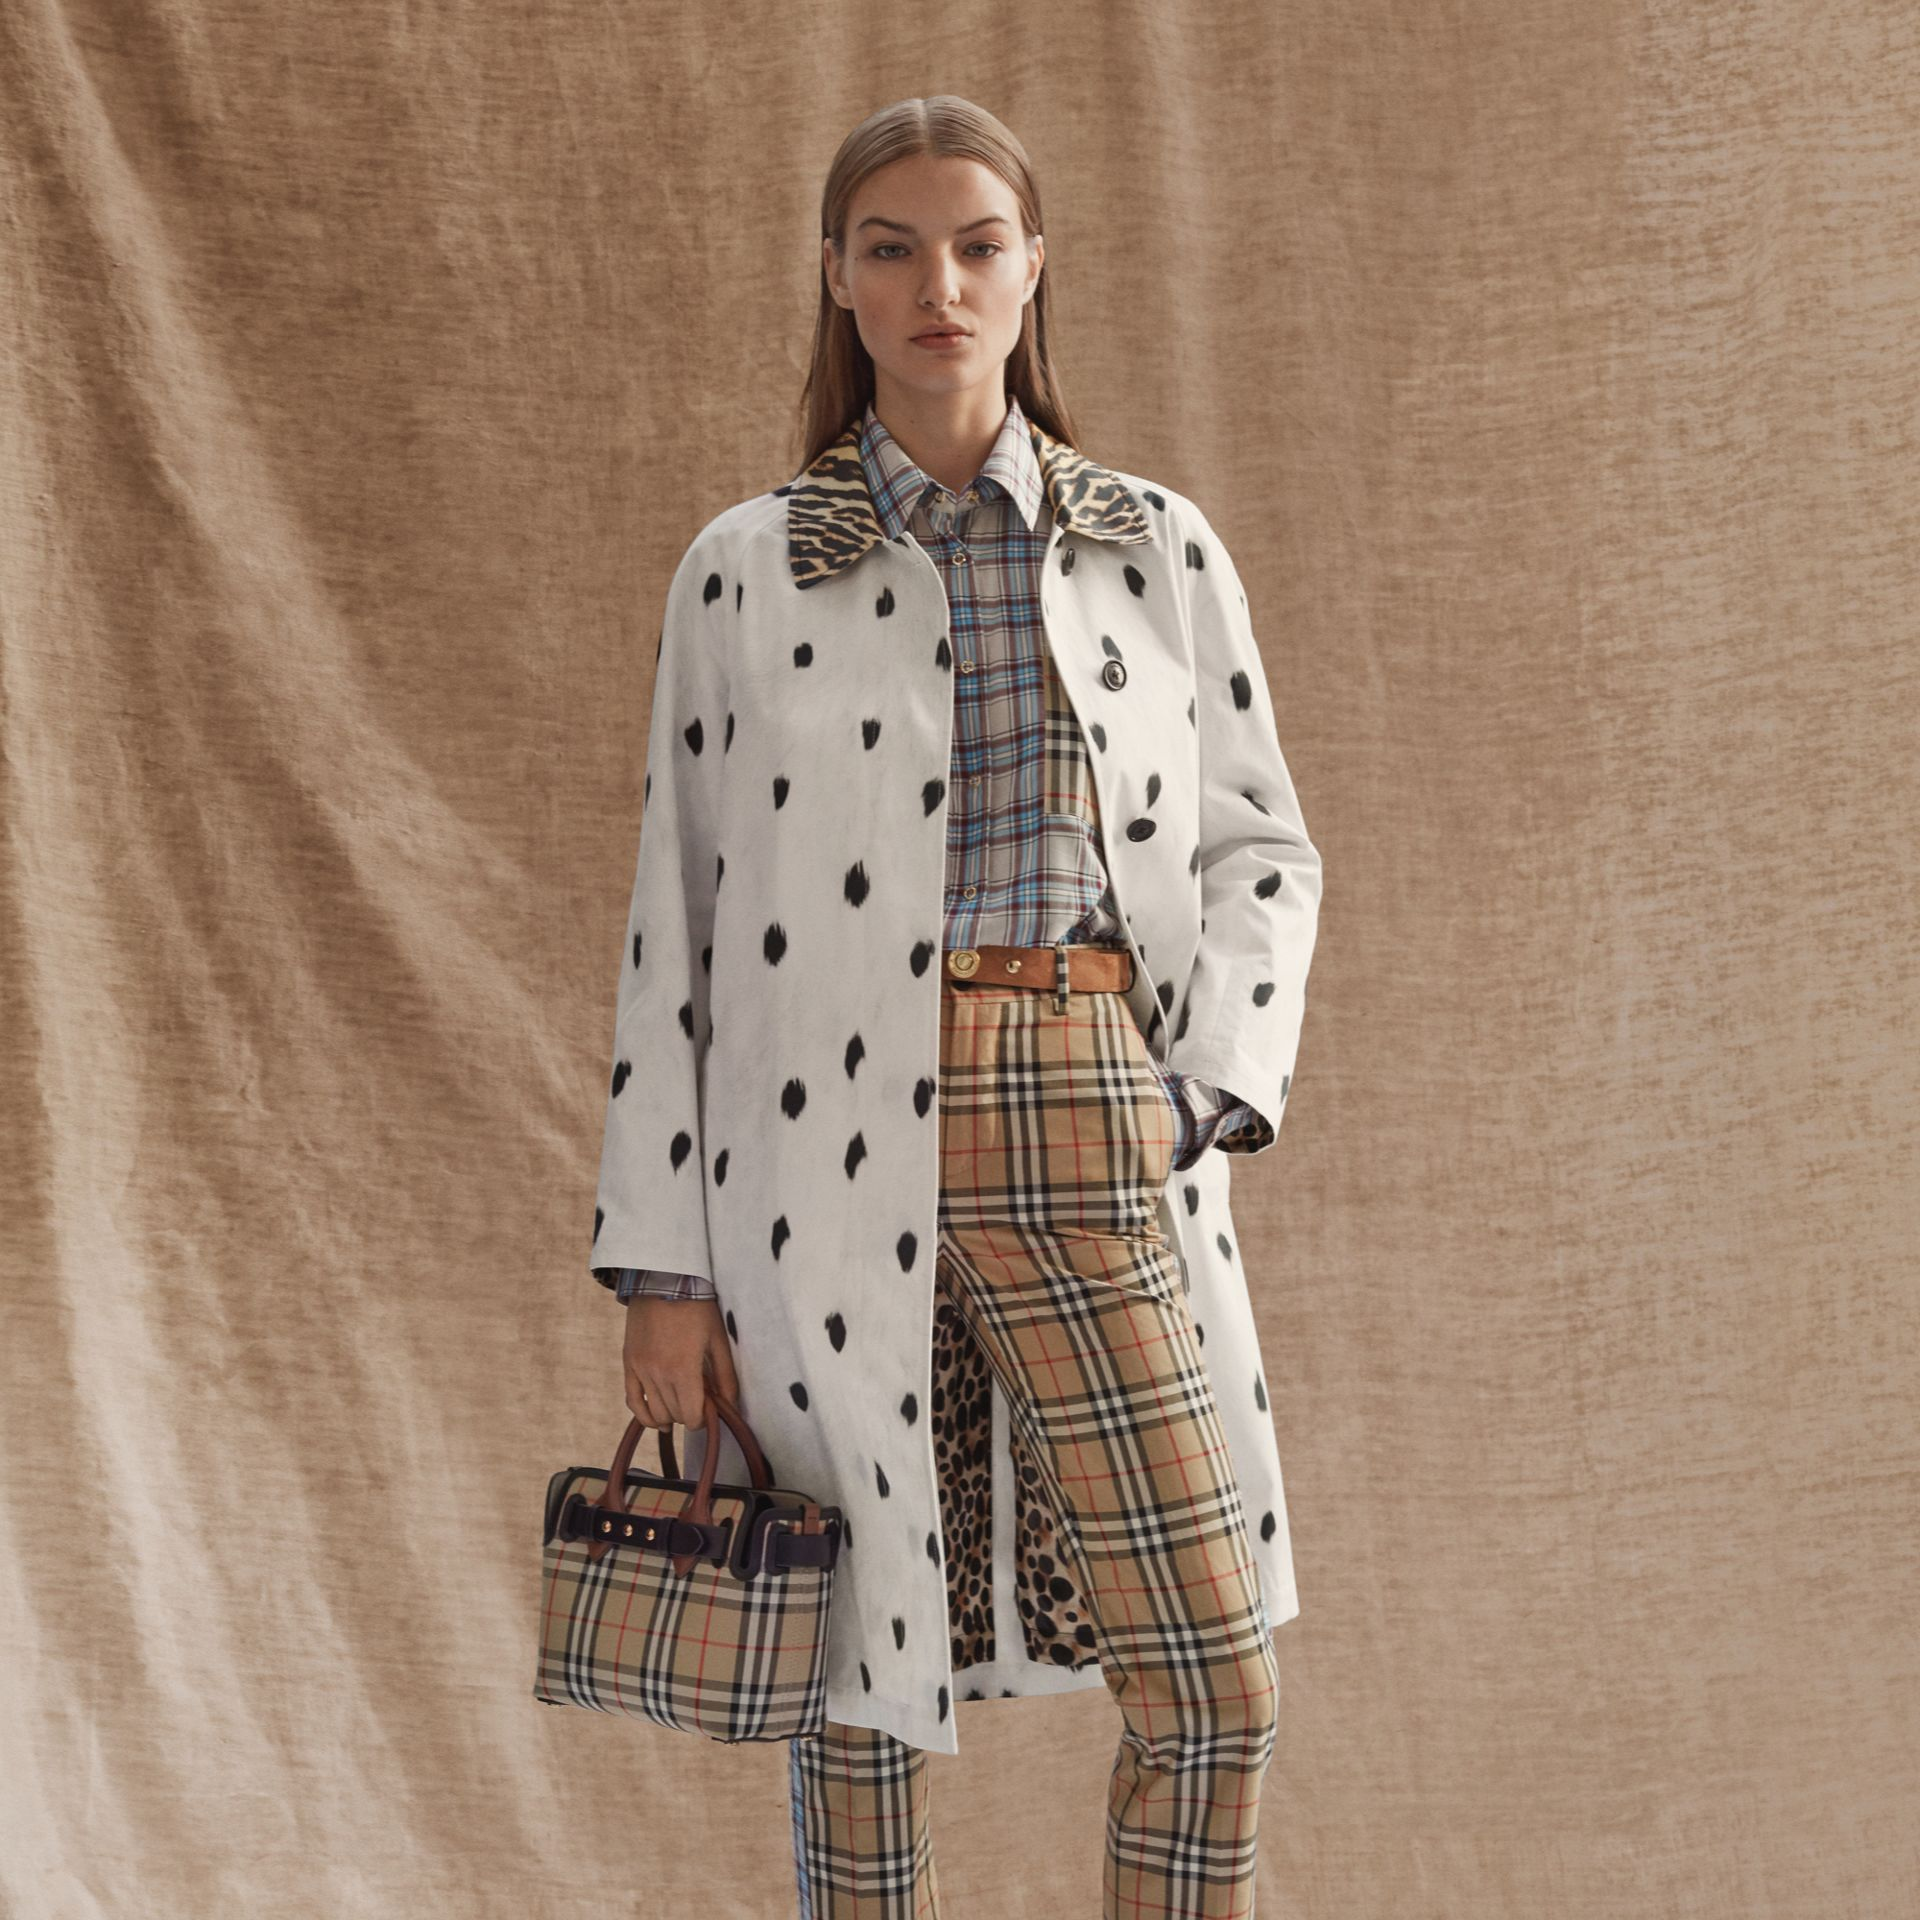 Pantalon droit en coton check (Beige D'archive) - Femme | Burberry - photo de la galerie 1